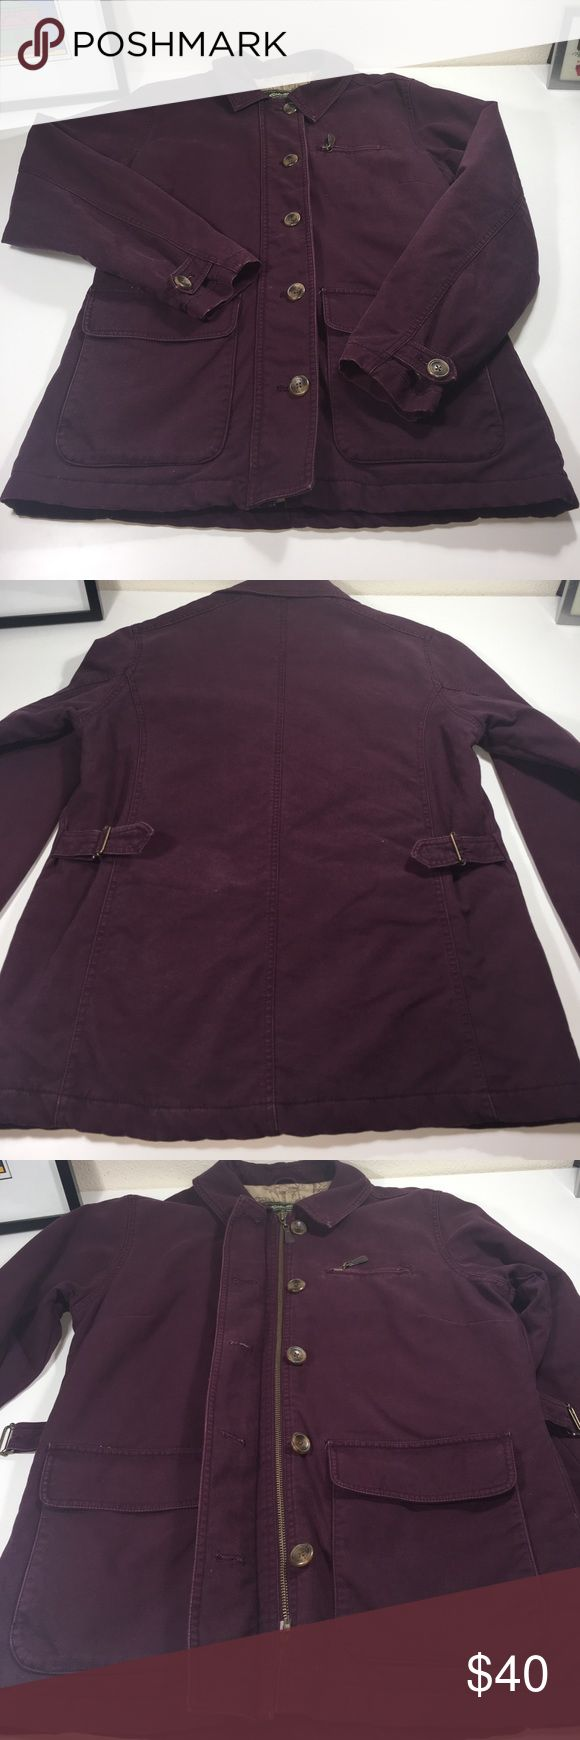 Eddie Bauer 100% Cotton Jacket Sz. M Please see all pictures.  This is a heavy cotton jacket, think Carhartt texture.  Color is maroon in my opinion.  Looks different colors in the pictures because of lighting but I believe that maroon is the most accurate description.  Waist cincher/adjusters on back for a tailored fit.  No flaws that I can find.  Fees thick like it has poly fill for insulation.  Bundle to save!  Sorry, no trades.  Poshmark sales are final.  Ask questions is any, see al…